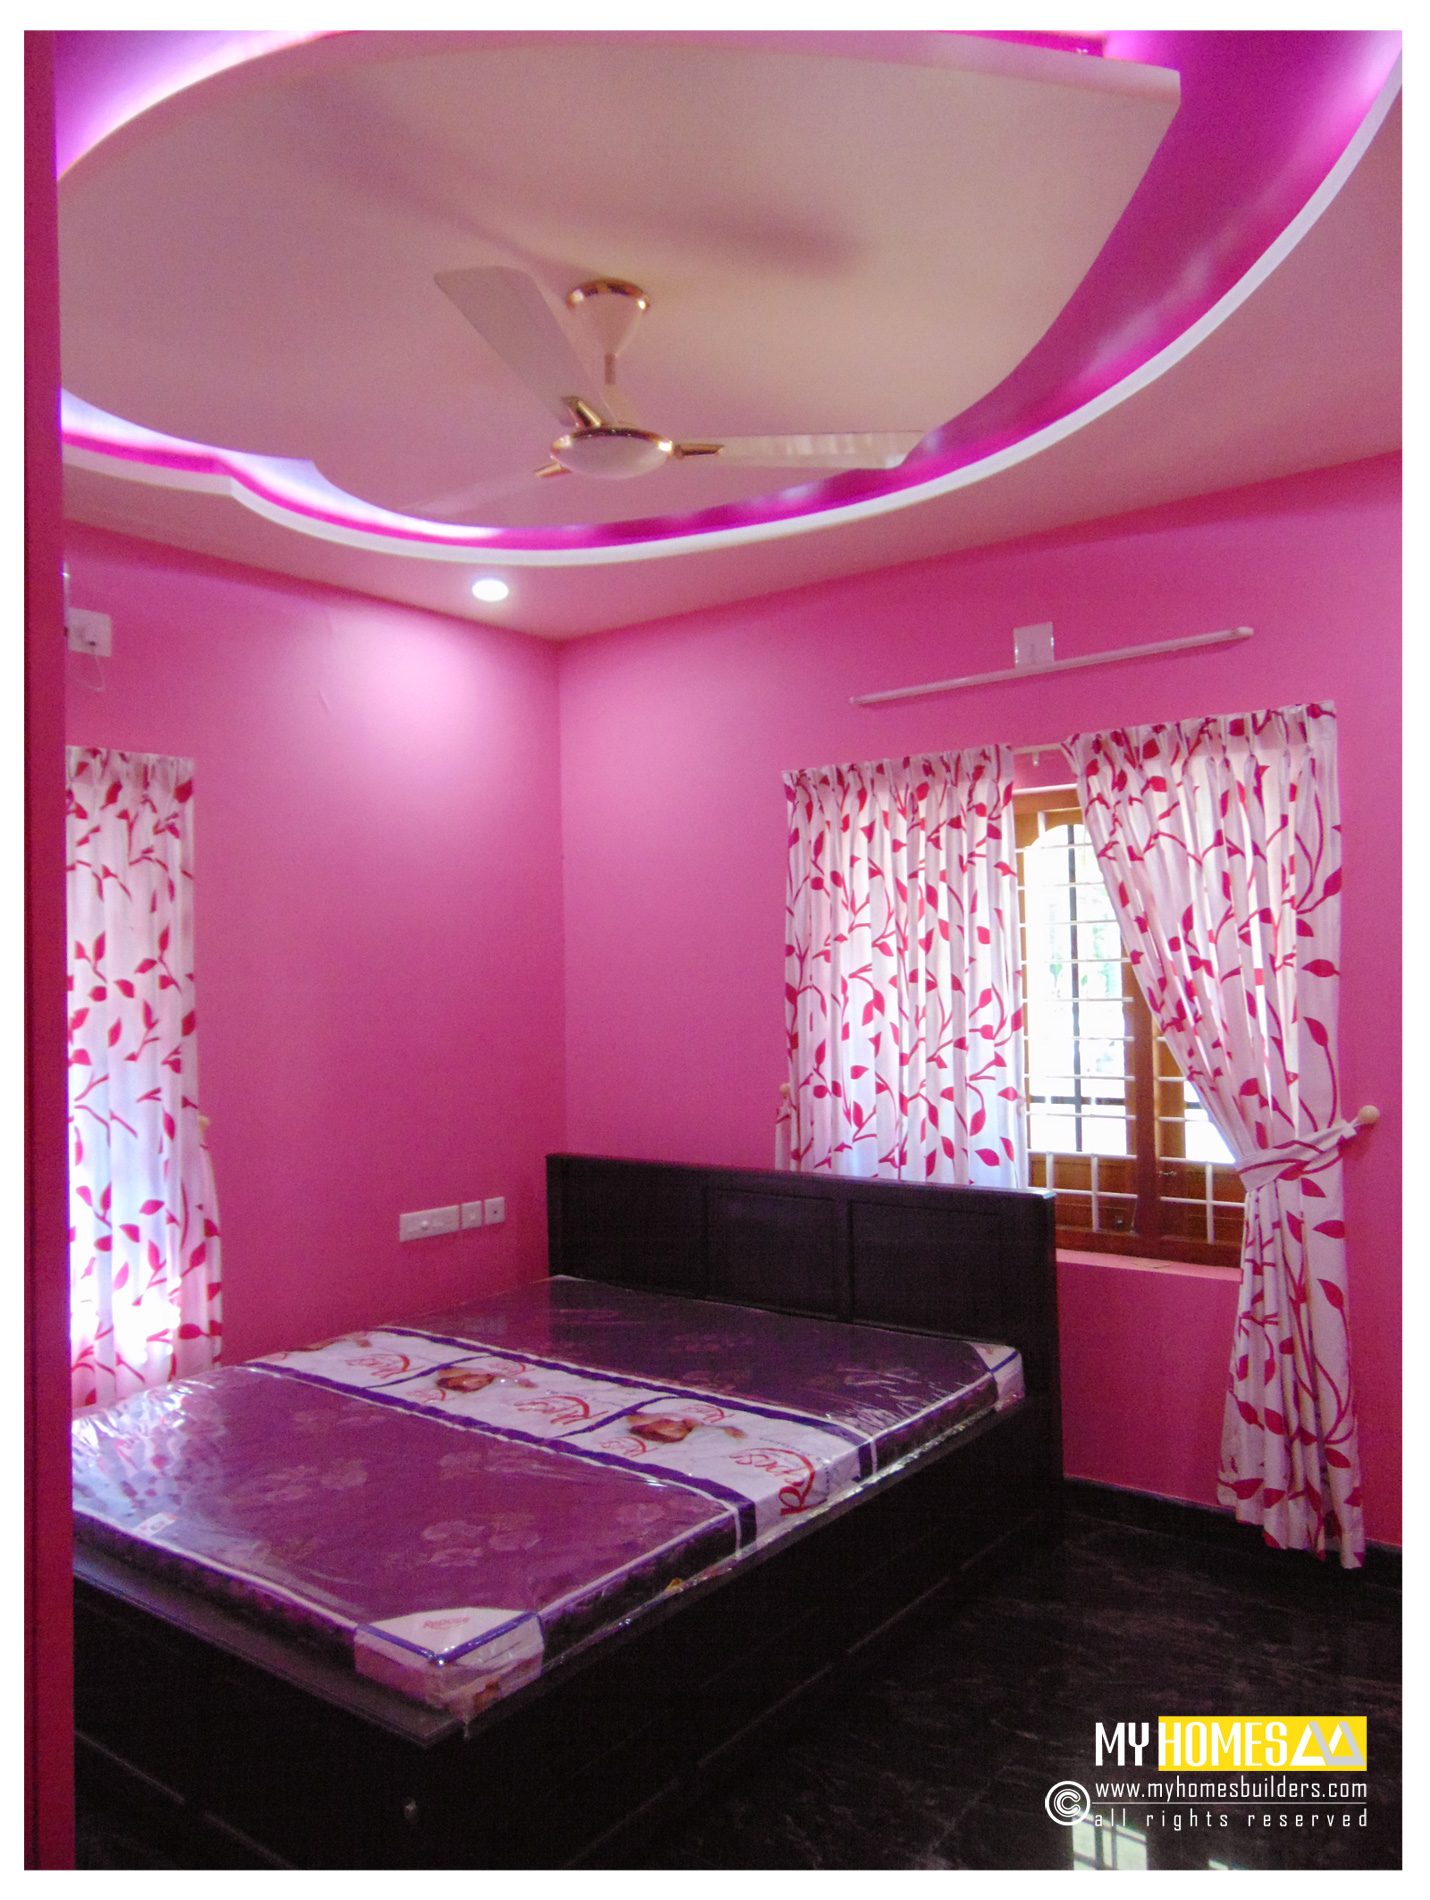 Simple style kerala bedroom designs ideas for home interior Photos of bedrooms interior design